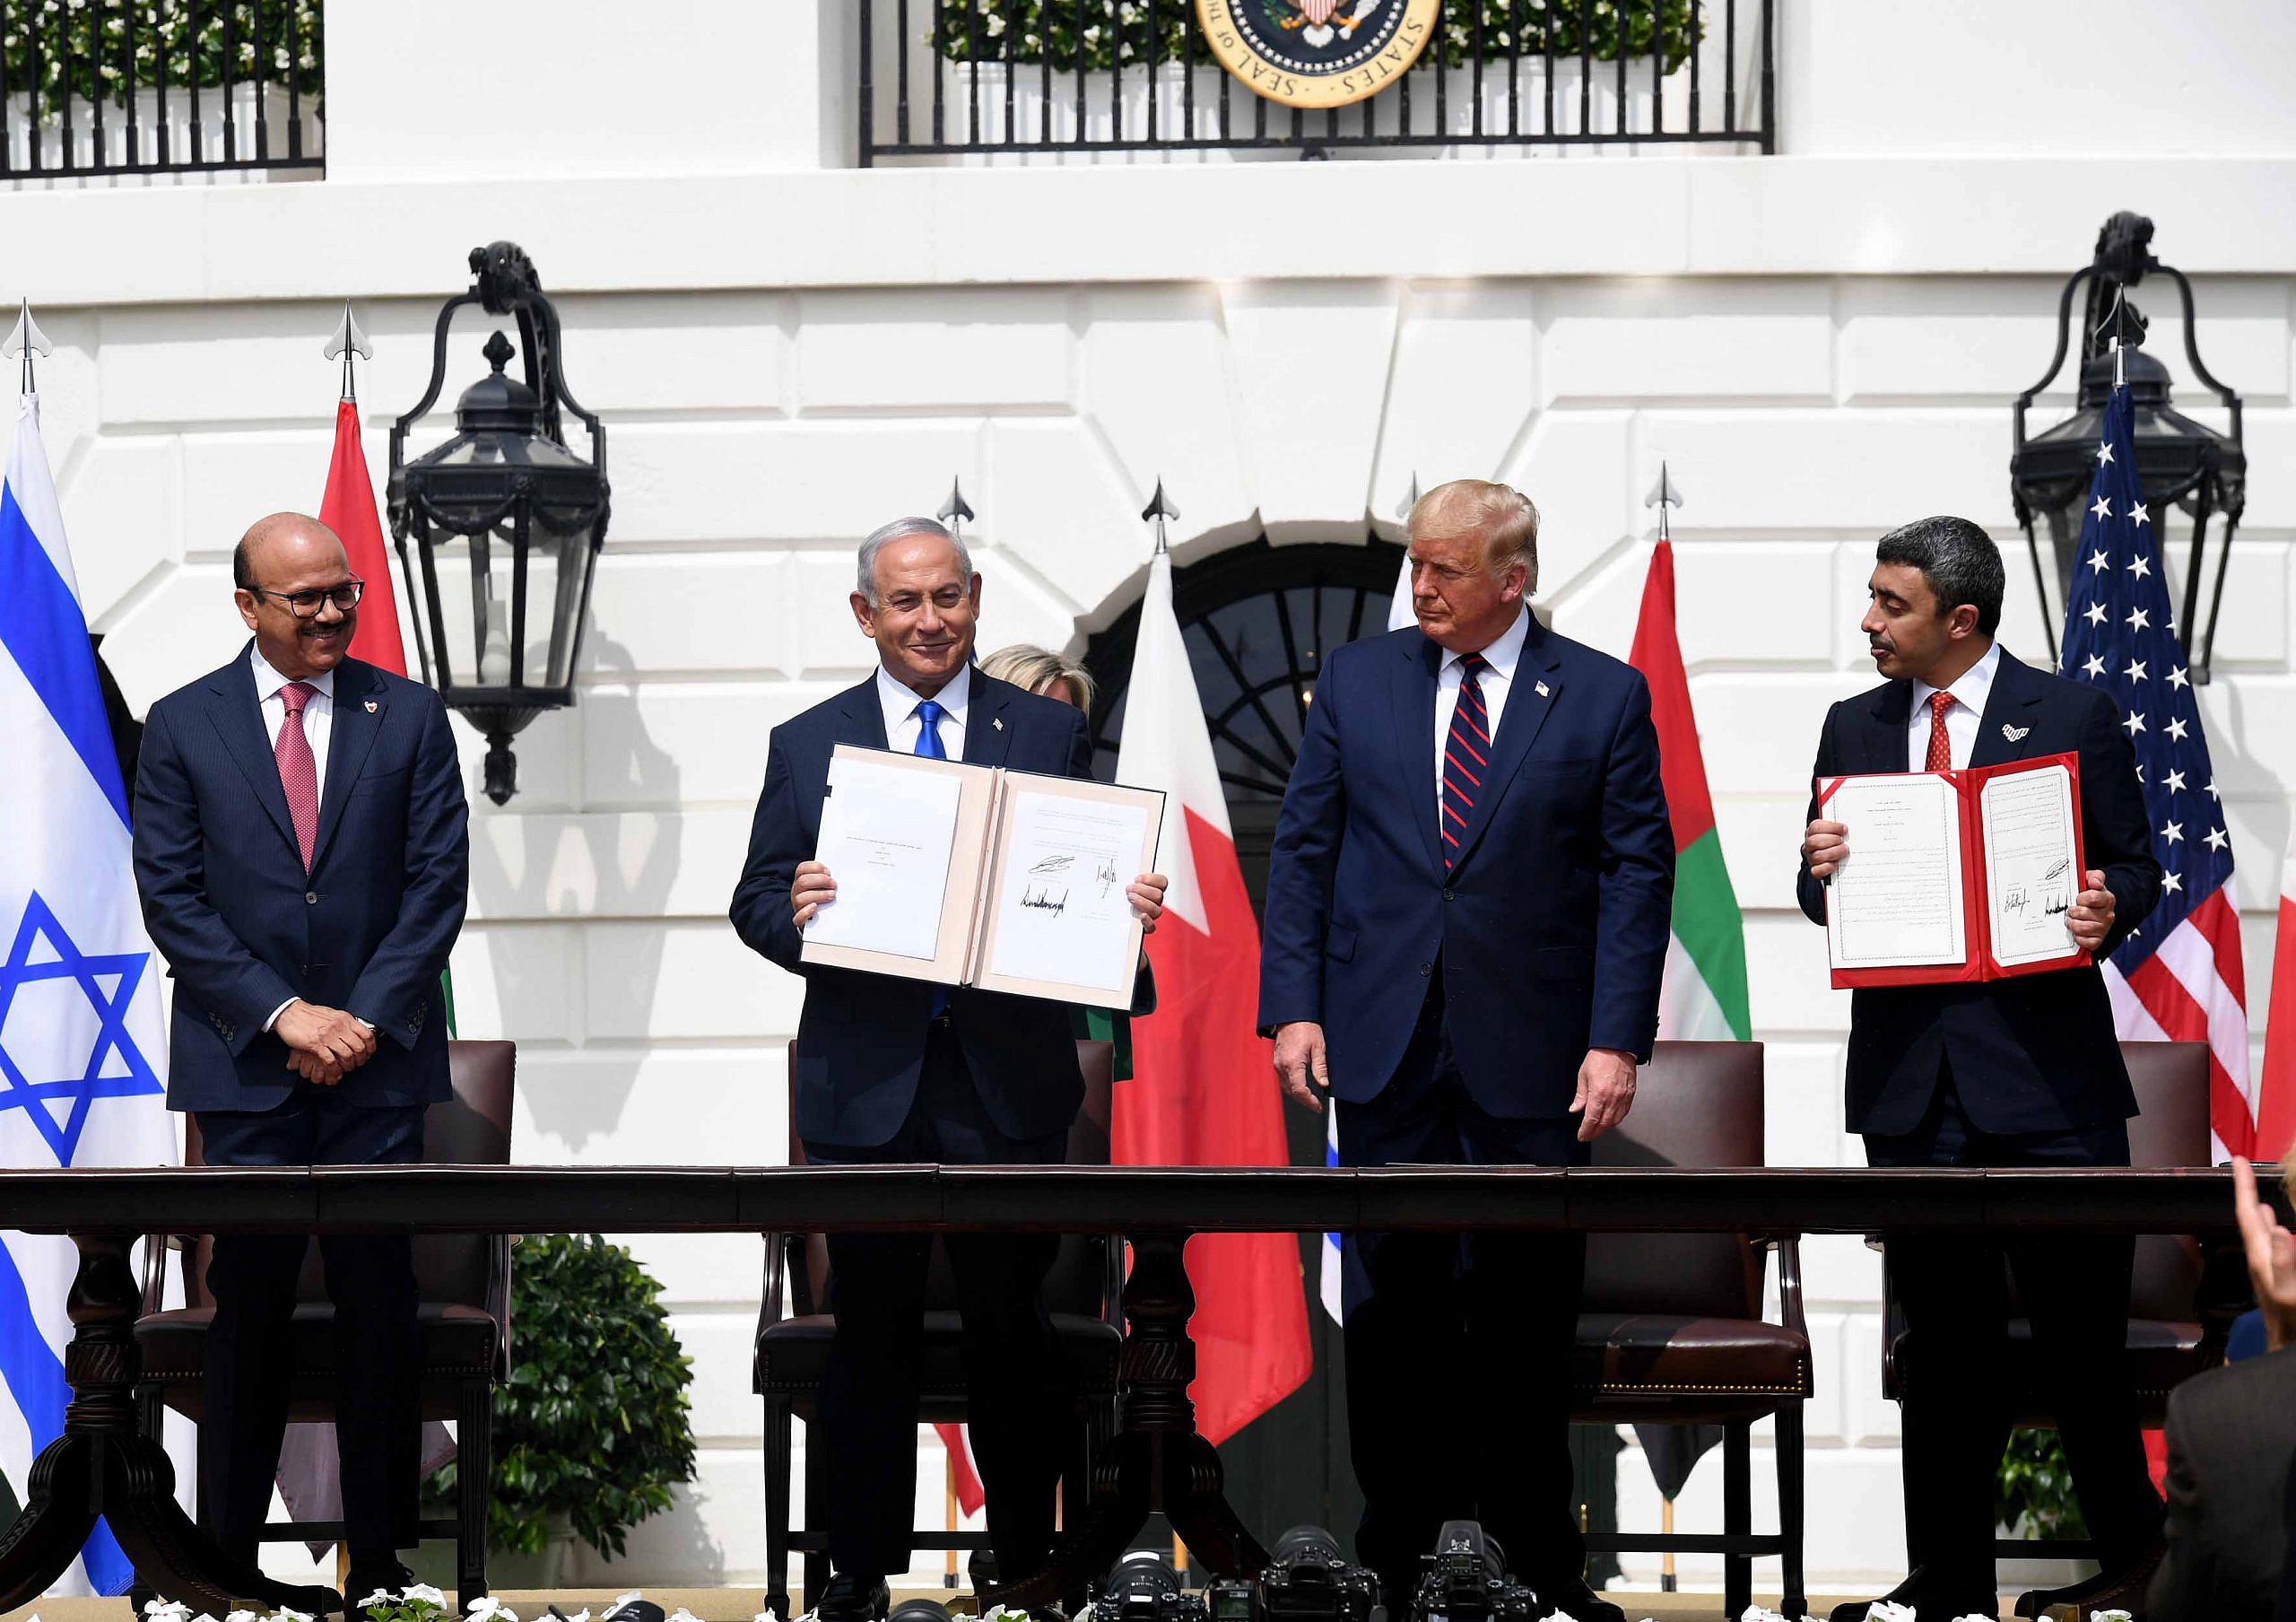 Israeli Prime Minister Benjamin Netanyahu, U.S. President Donald Trump, Minister of Foreign Affairs and International Cooperation of the UAE Abdullah bin Zayed Al Nahyan and Abdullatif bin Rashid Al-Zayani, Minister of Foreign Affairs of Bahrain attend the Abraham Accords Signing Ceremony at the White House in Washington, USA, September 15, 2020. (Avi Ohayon/GPO)